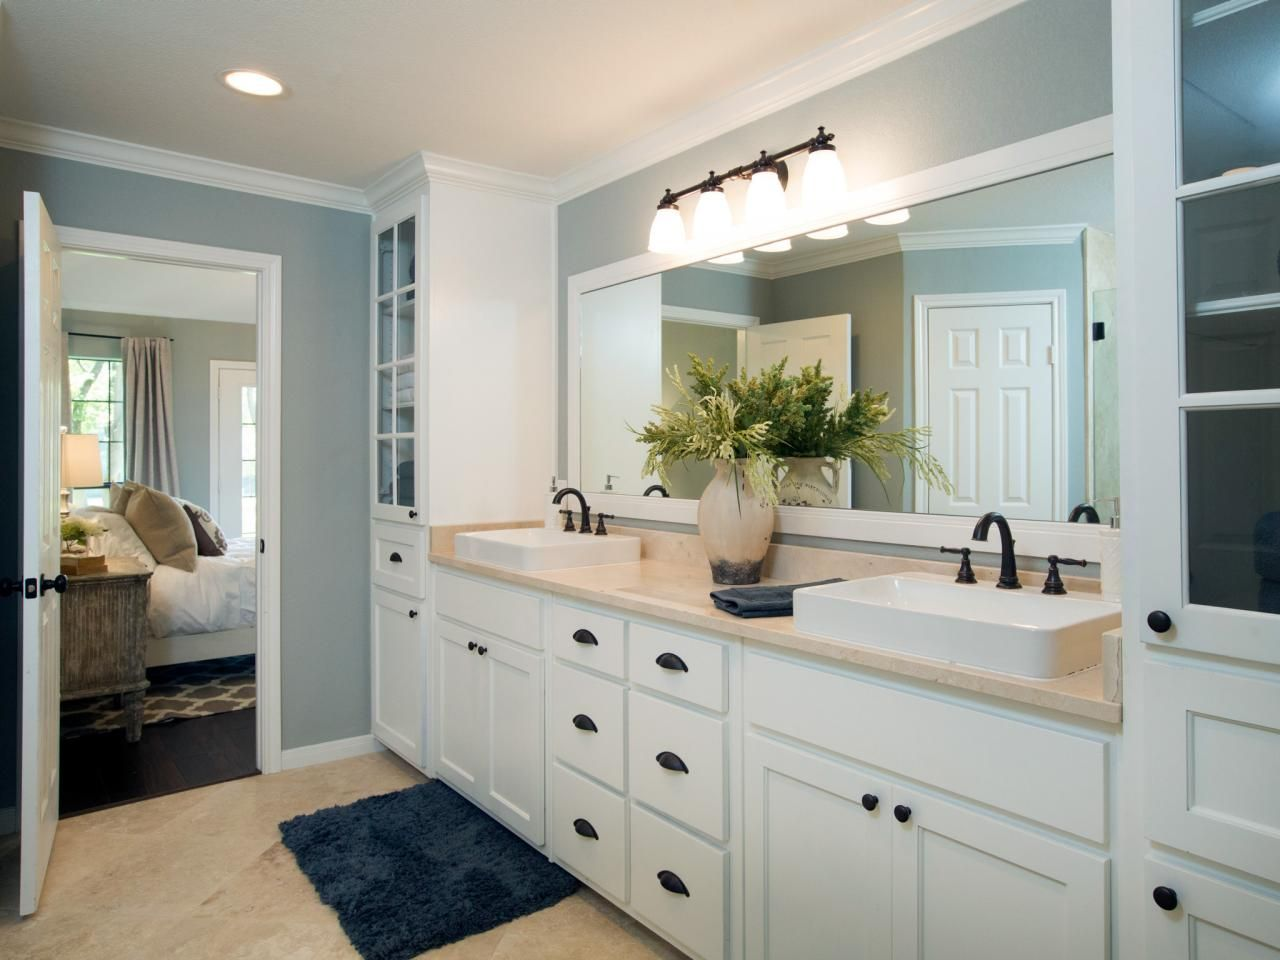 Fixer upper yours mine ours and a home on the river for Best bathrooms on fixer upper